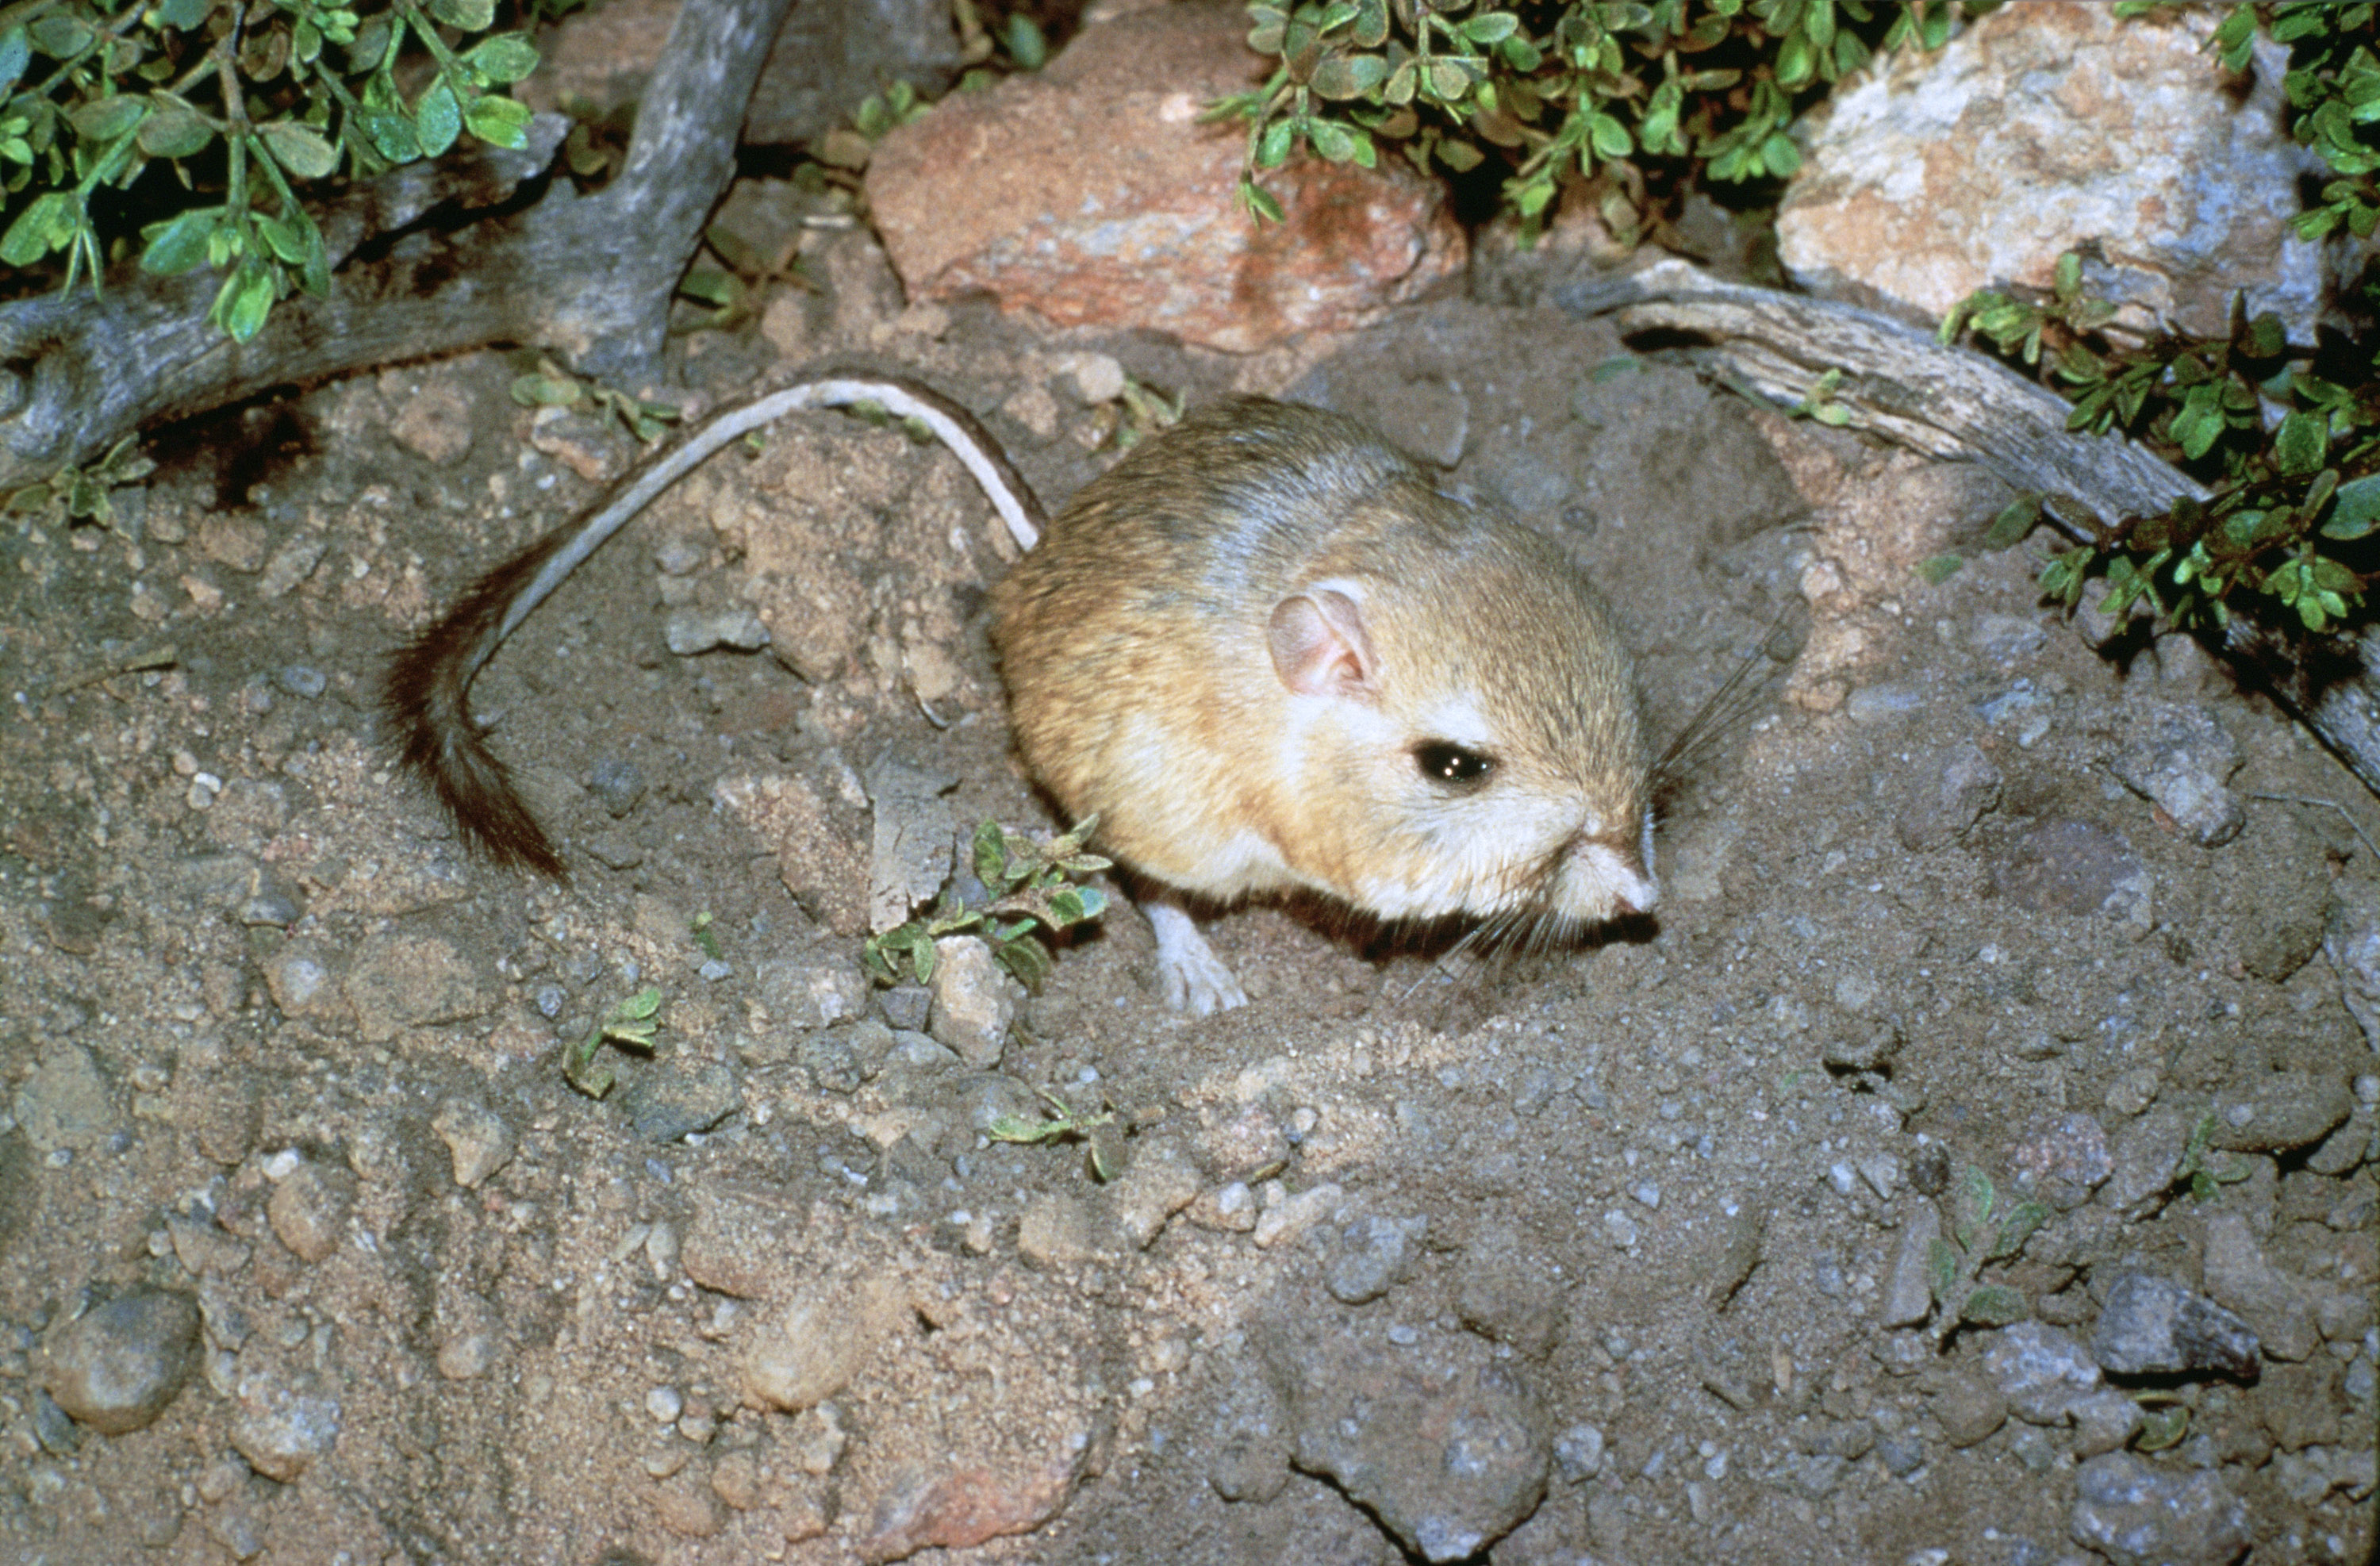 Kangaroo Rat Adaptations